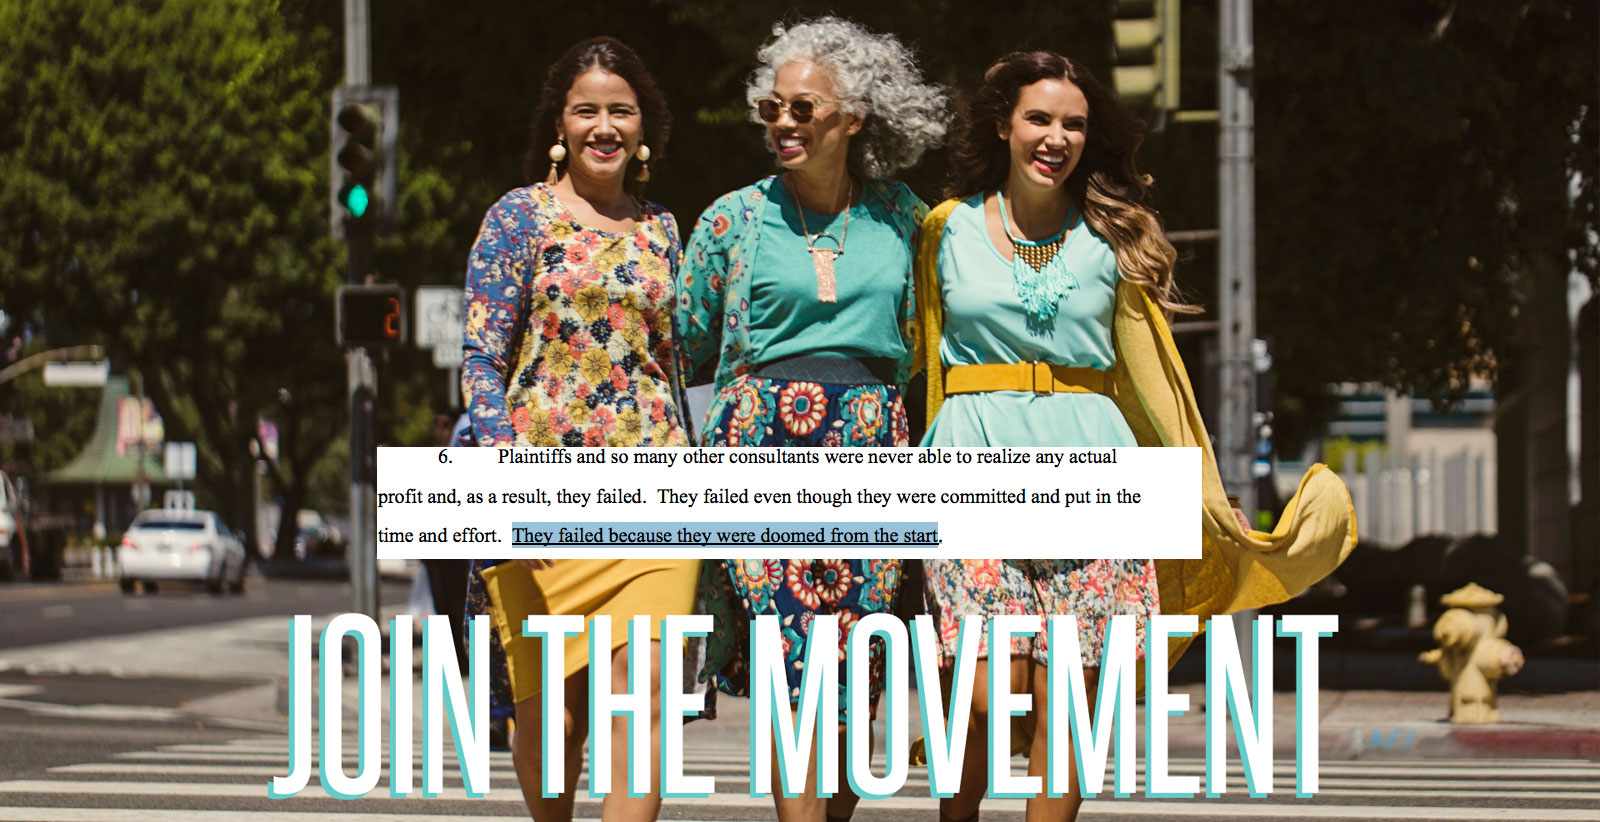 New LuLaRoe Lawsuits Accuse Company Of Running A Pyramid Scheme